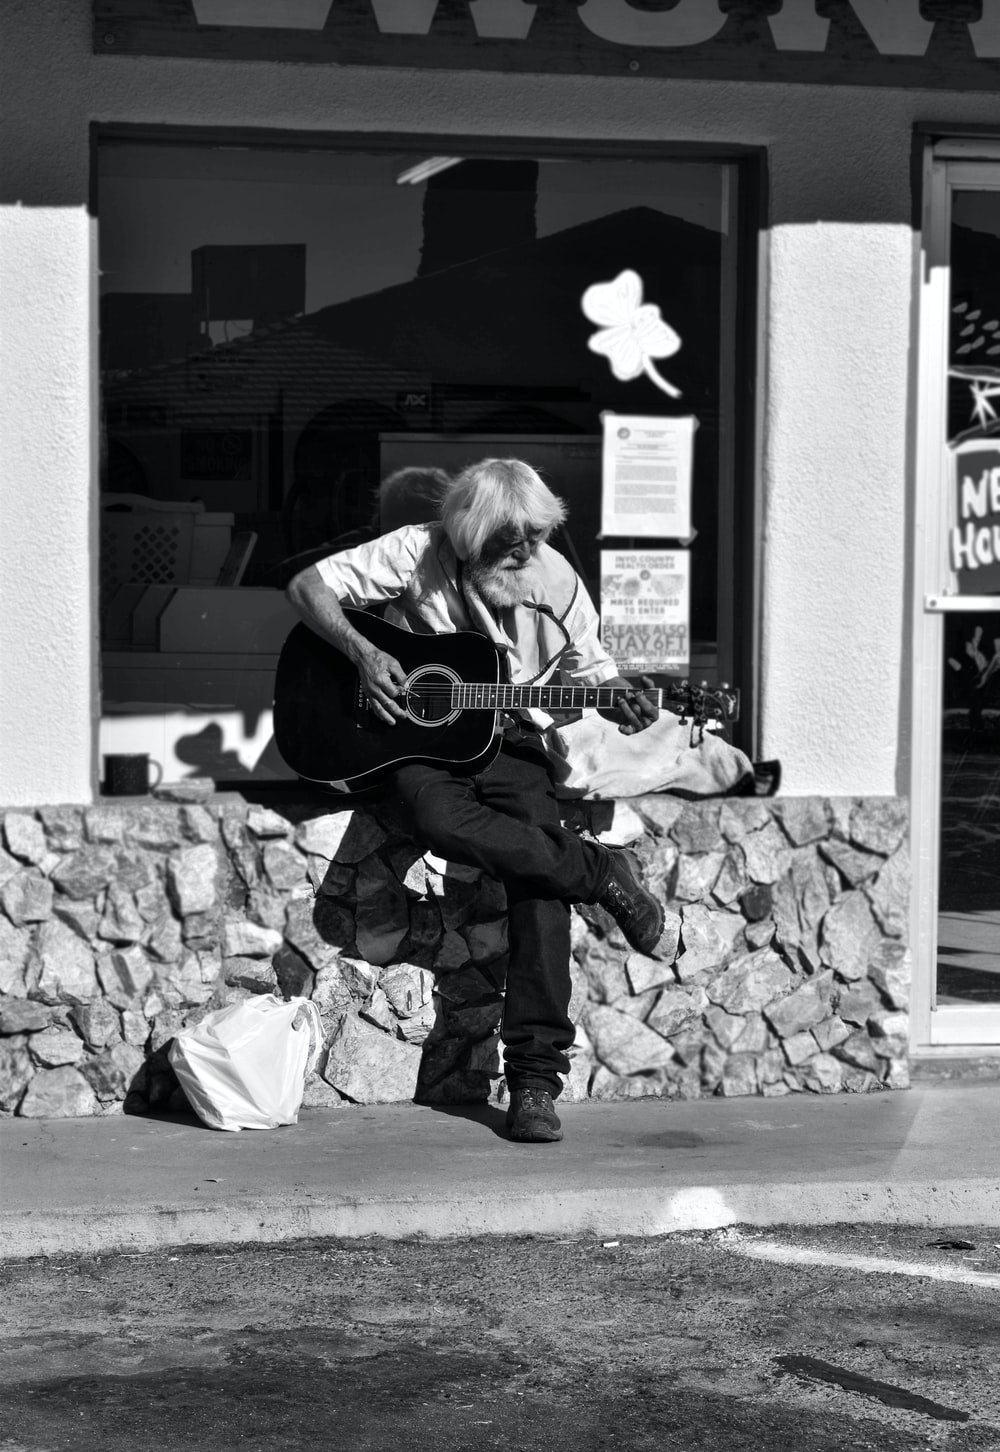 woman playing acoustic guitar in grayscale photography